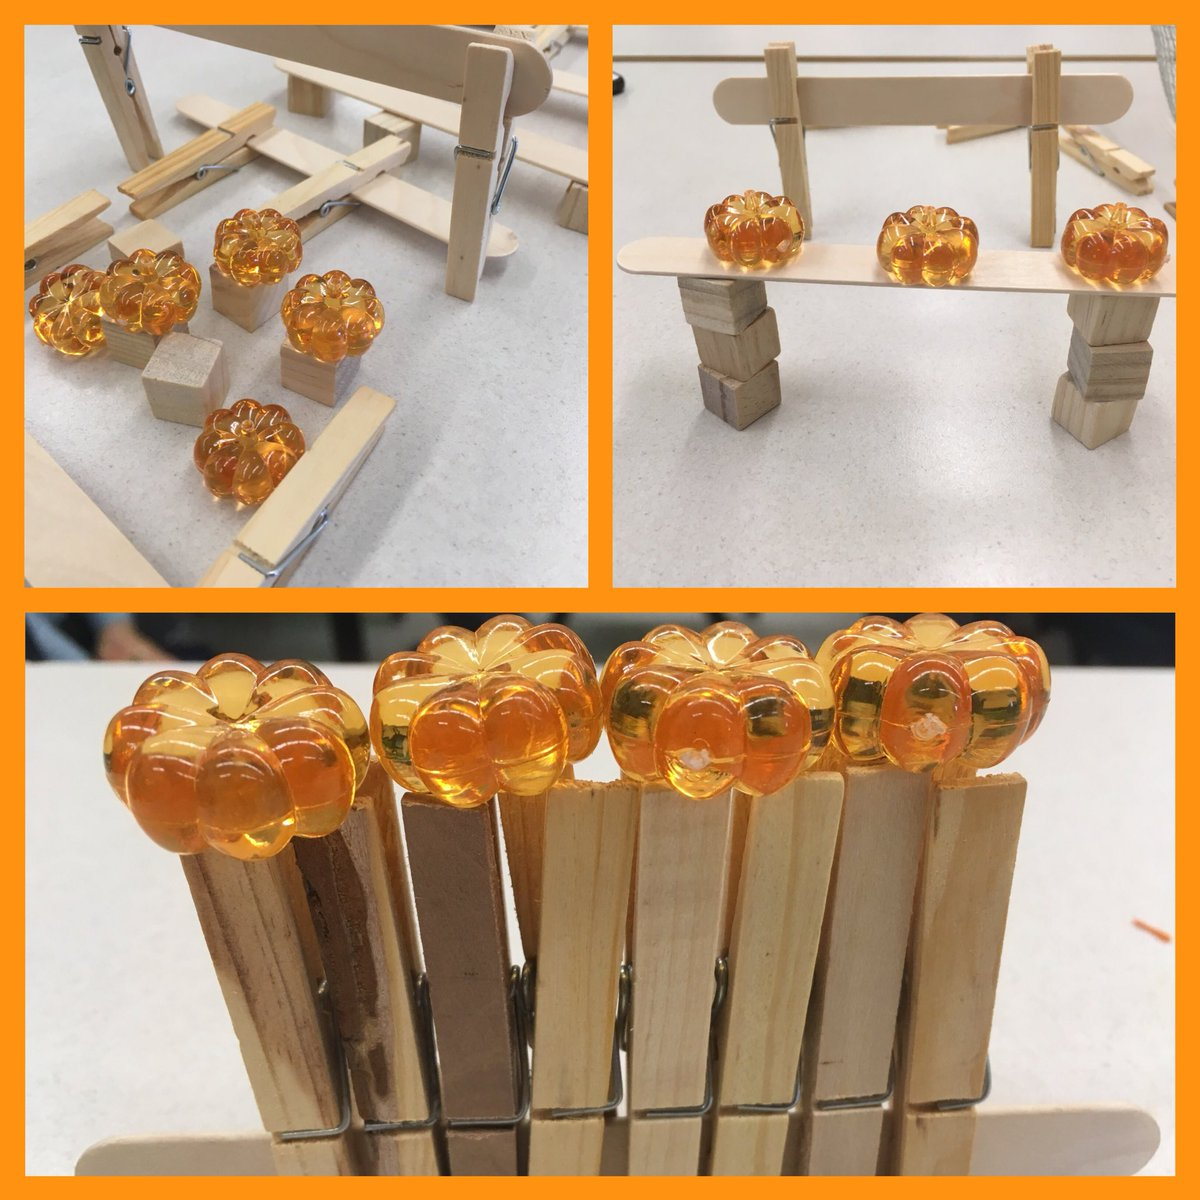 homoerotic sensibilities in late imperial china (routledgecurzon asian studies association of australia